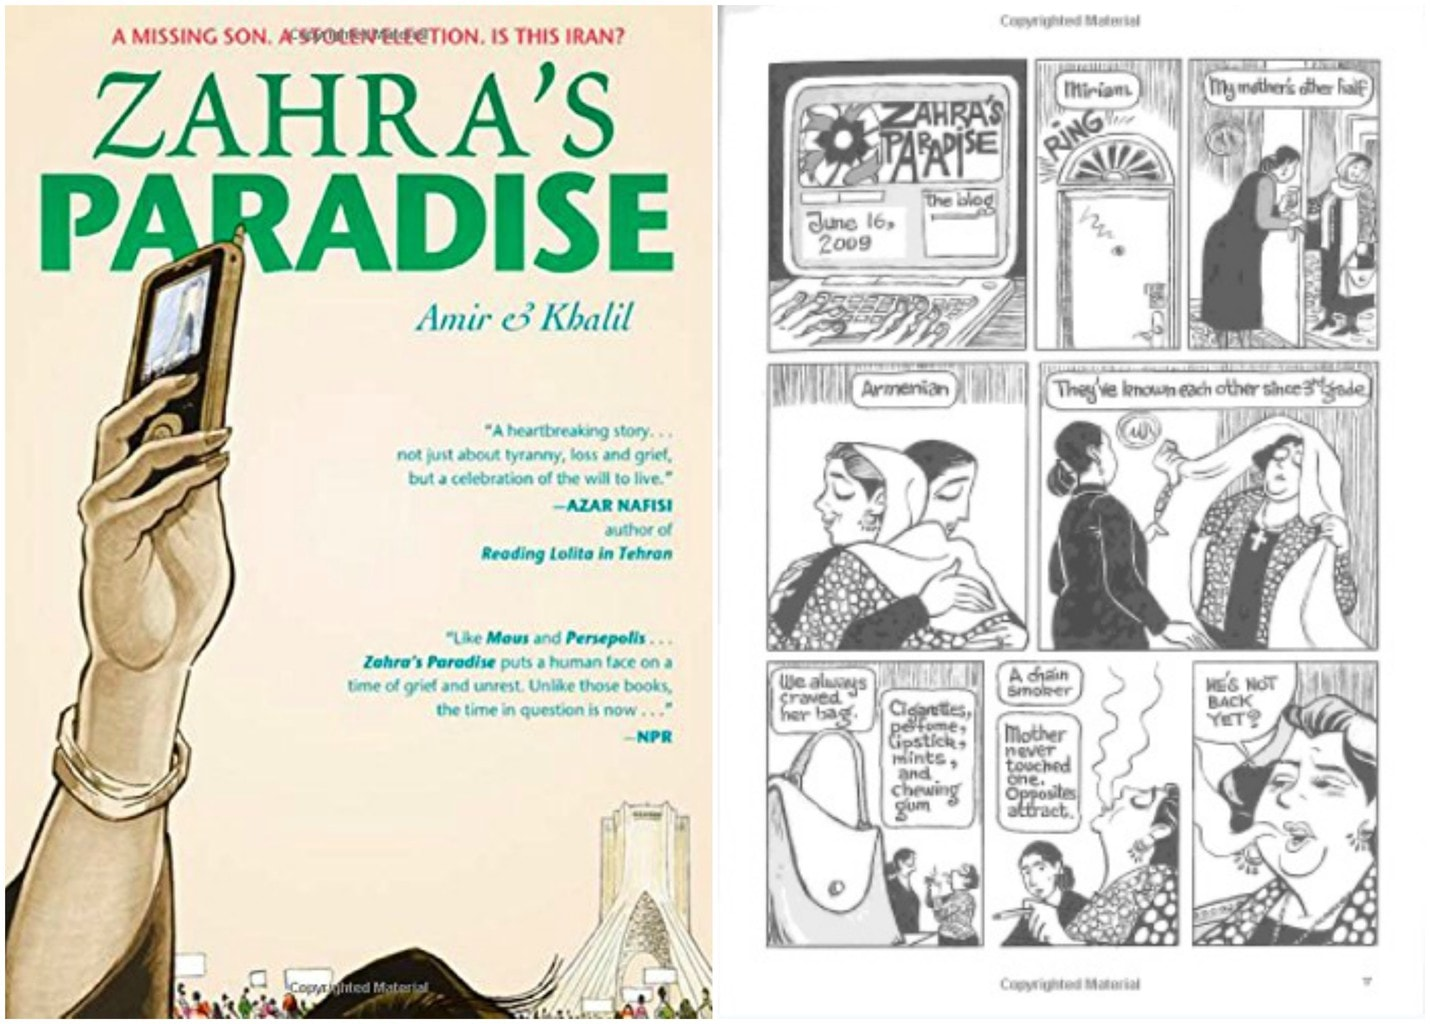 Zahra's paradise book cover